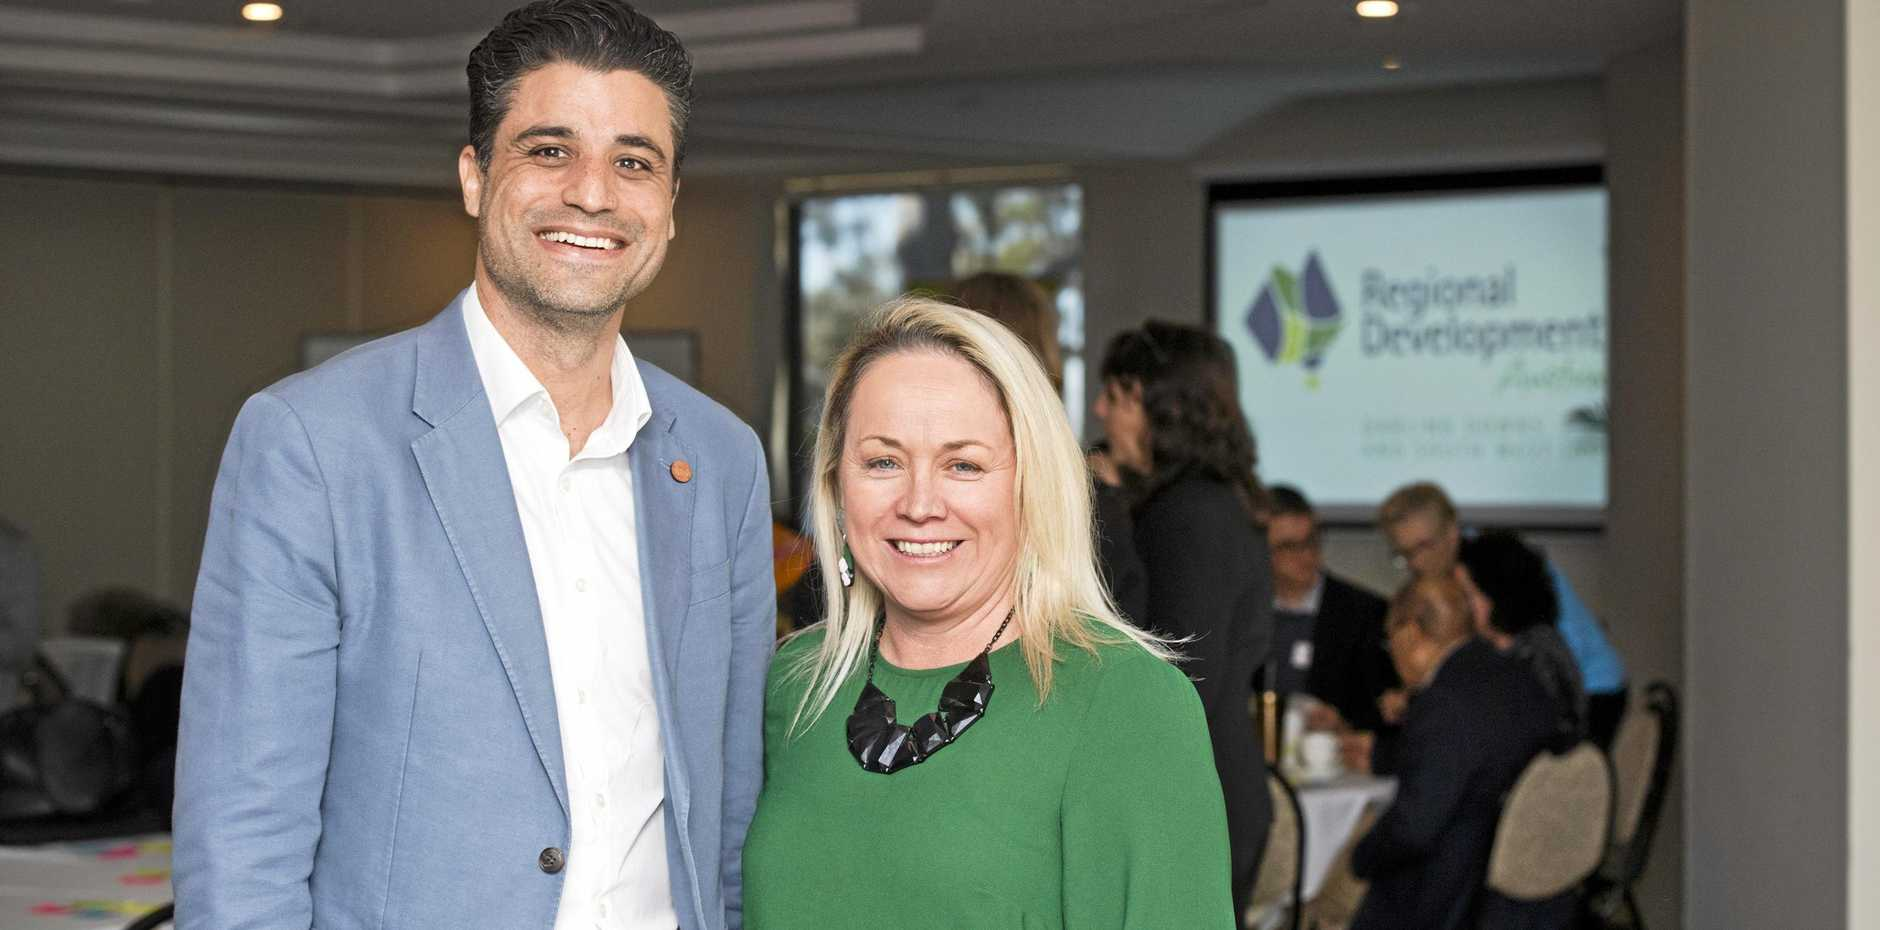 MAKING CONNECTIONS: Aleem Ali from Welcoming Australia and Trudi Bartlett from Regional Development Australia Darling Downs were at a special forum on migration.